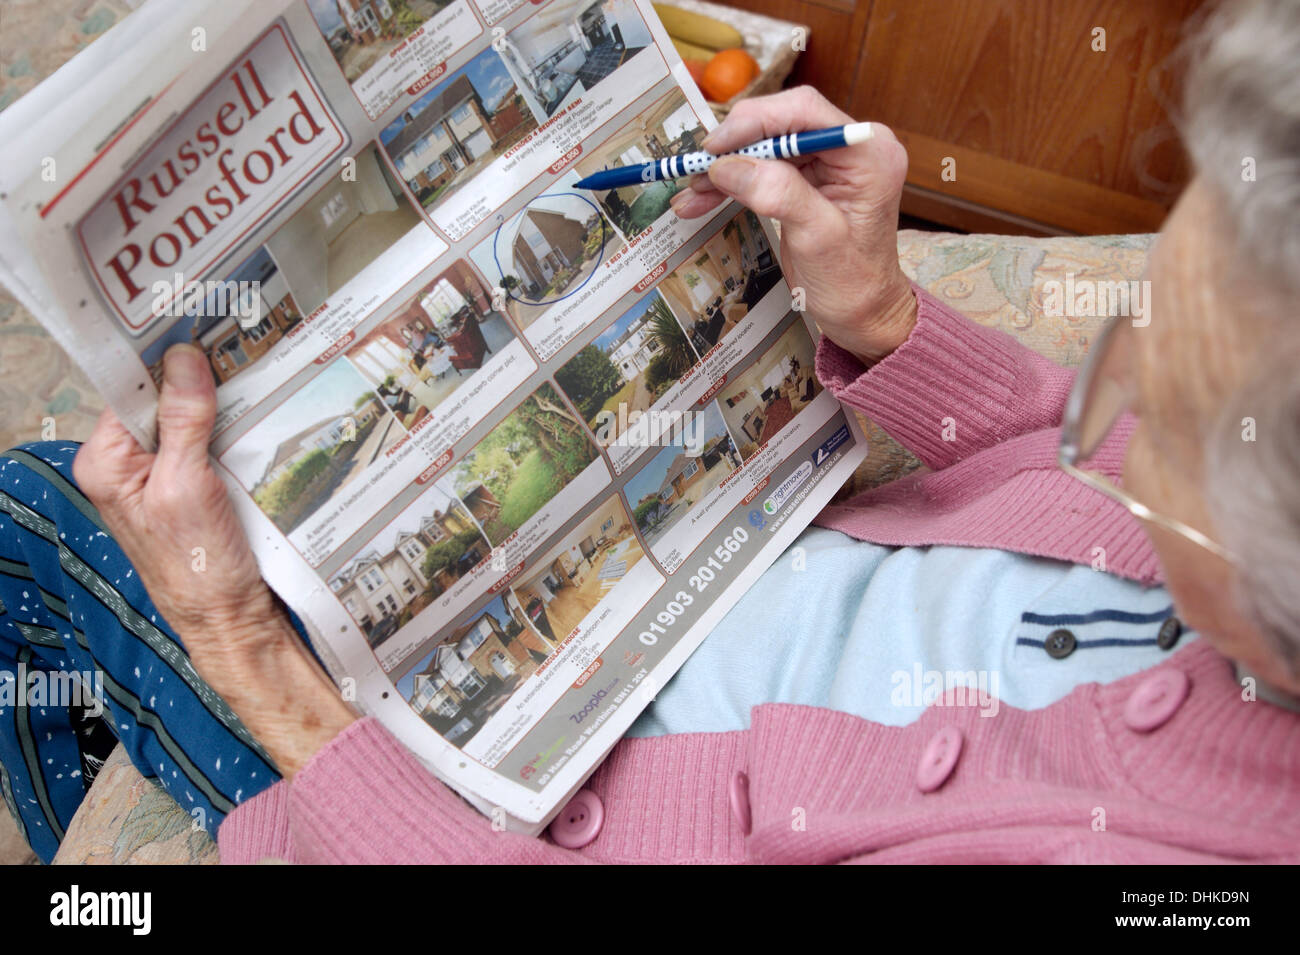 Elderly woman looking at properties on the property pages in a local paper & marking off anything interesting Stock Photo